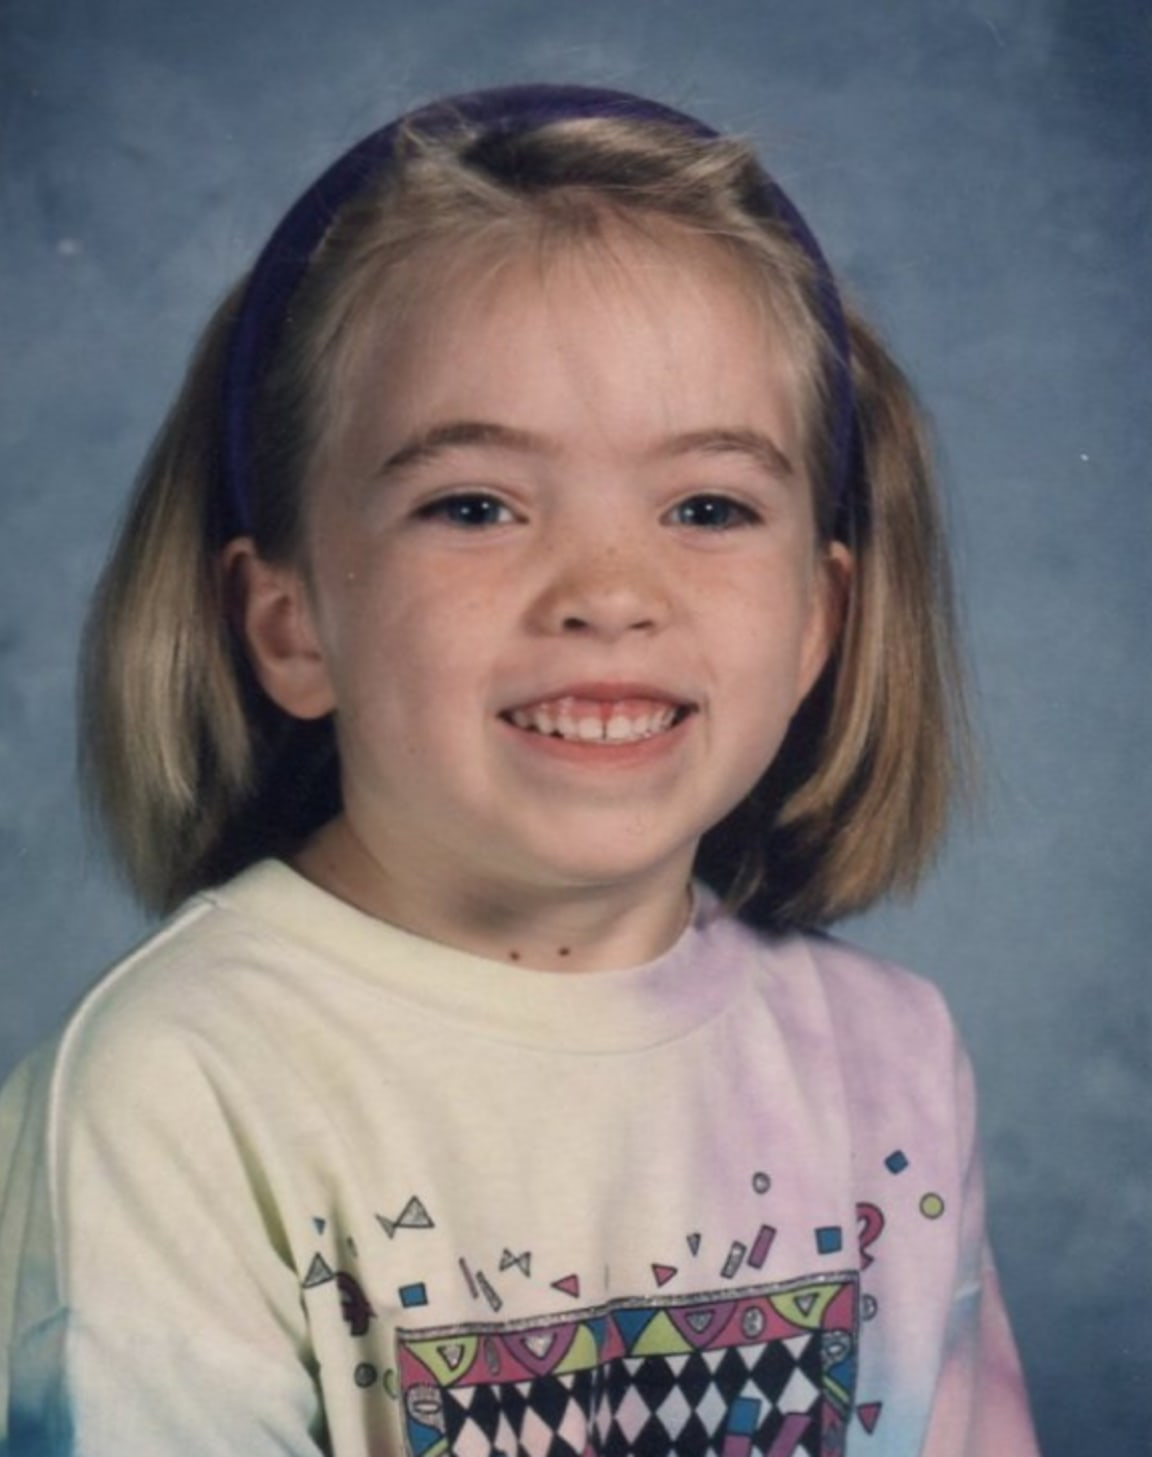 Lindsey as a kid